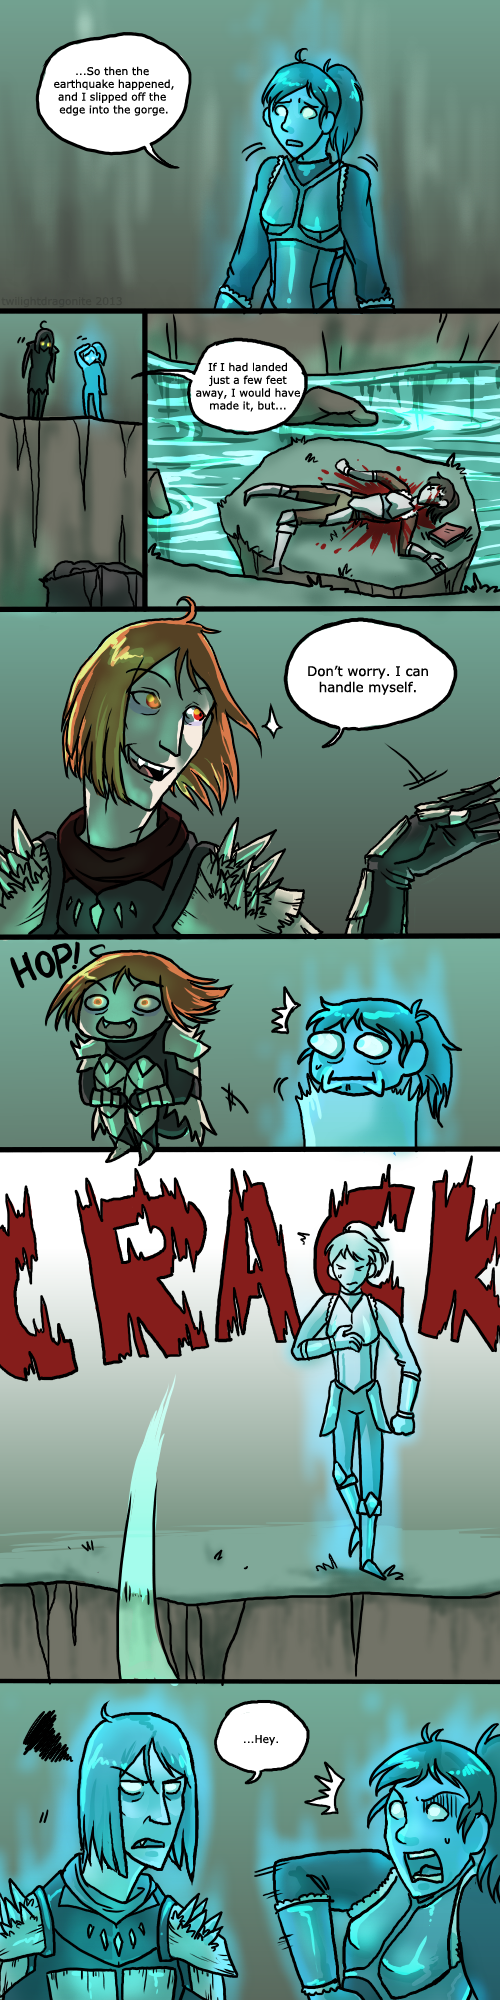 10 Skyrim Comics That Will Make You Want to Start a New Character ...